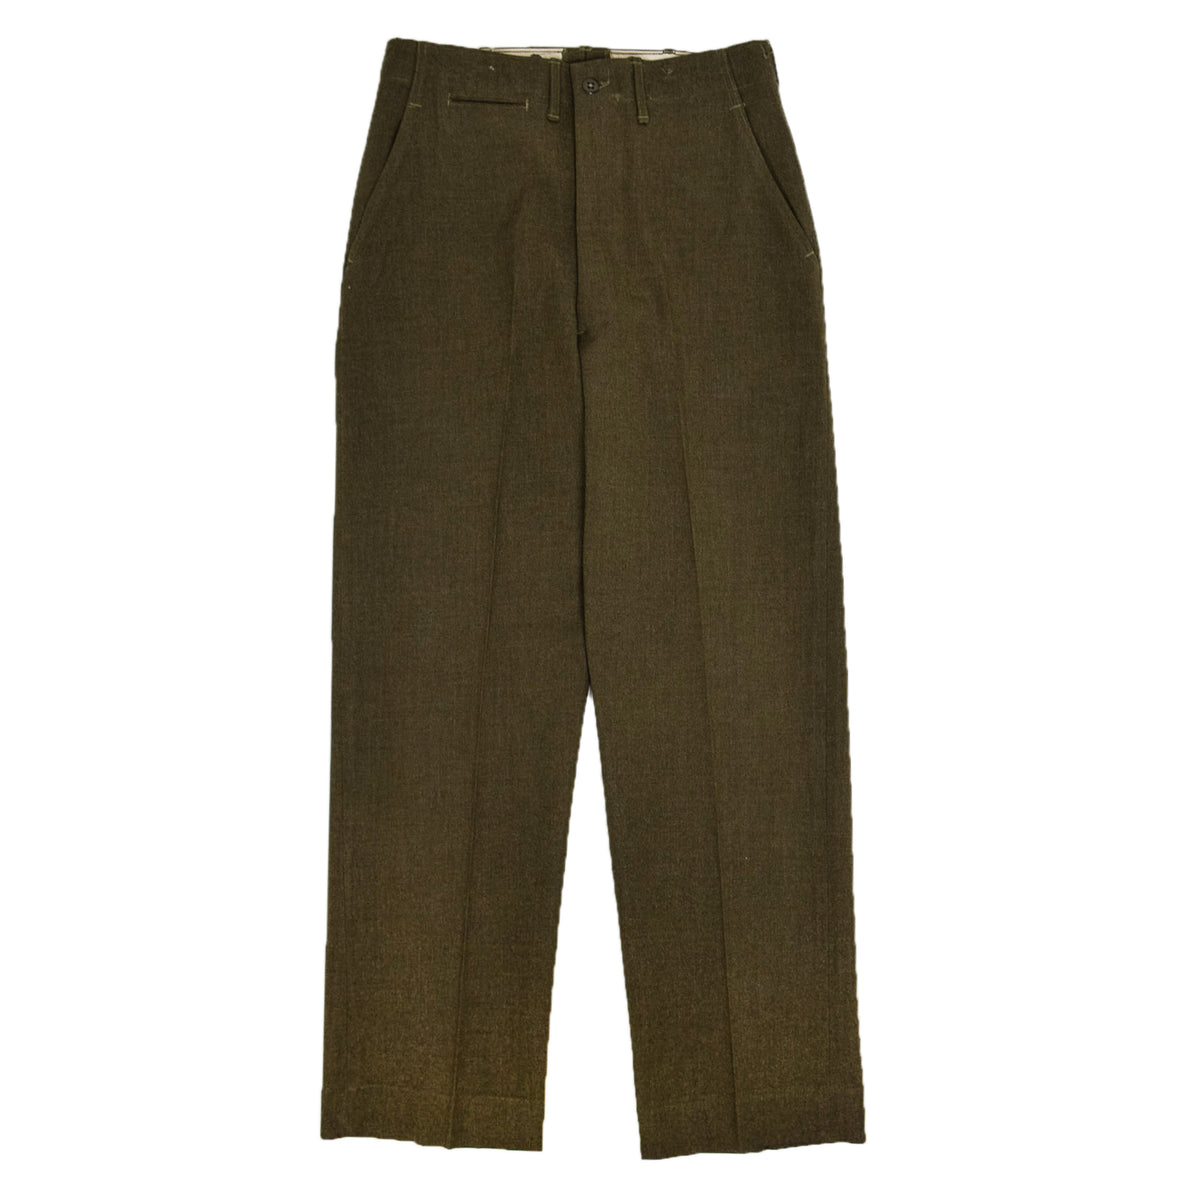 Vintage 40s Post WW2 US Army Wool Field Trousers 30 W 32 L  front